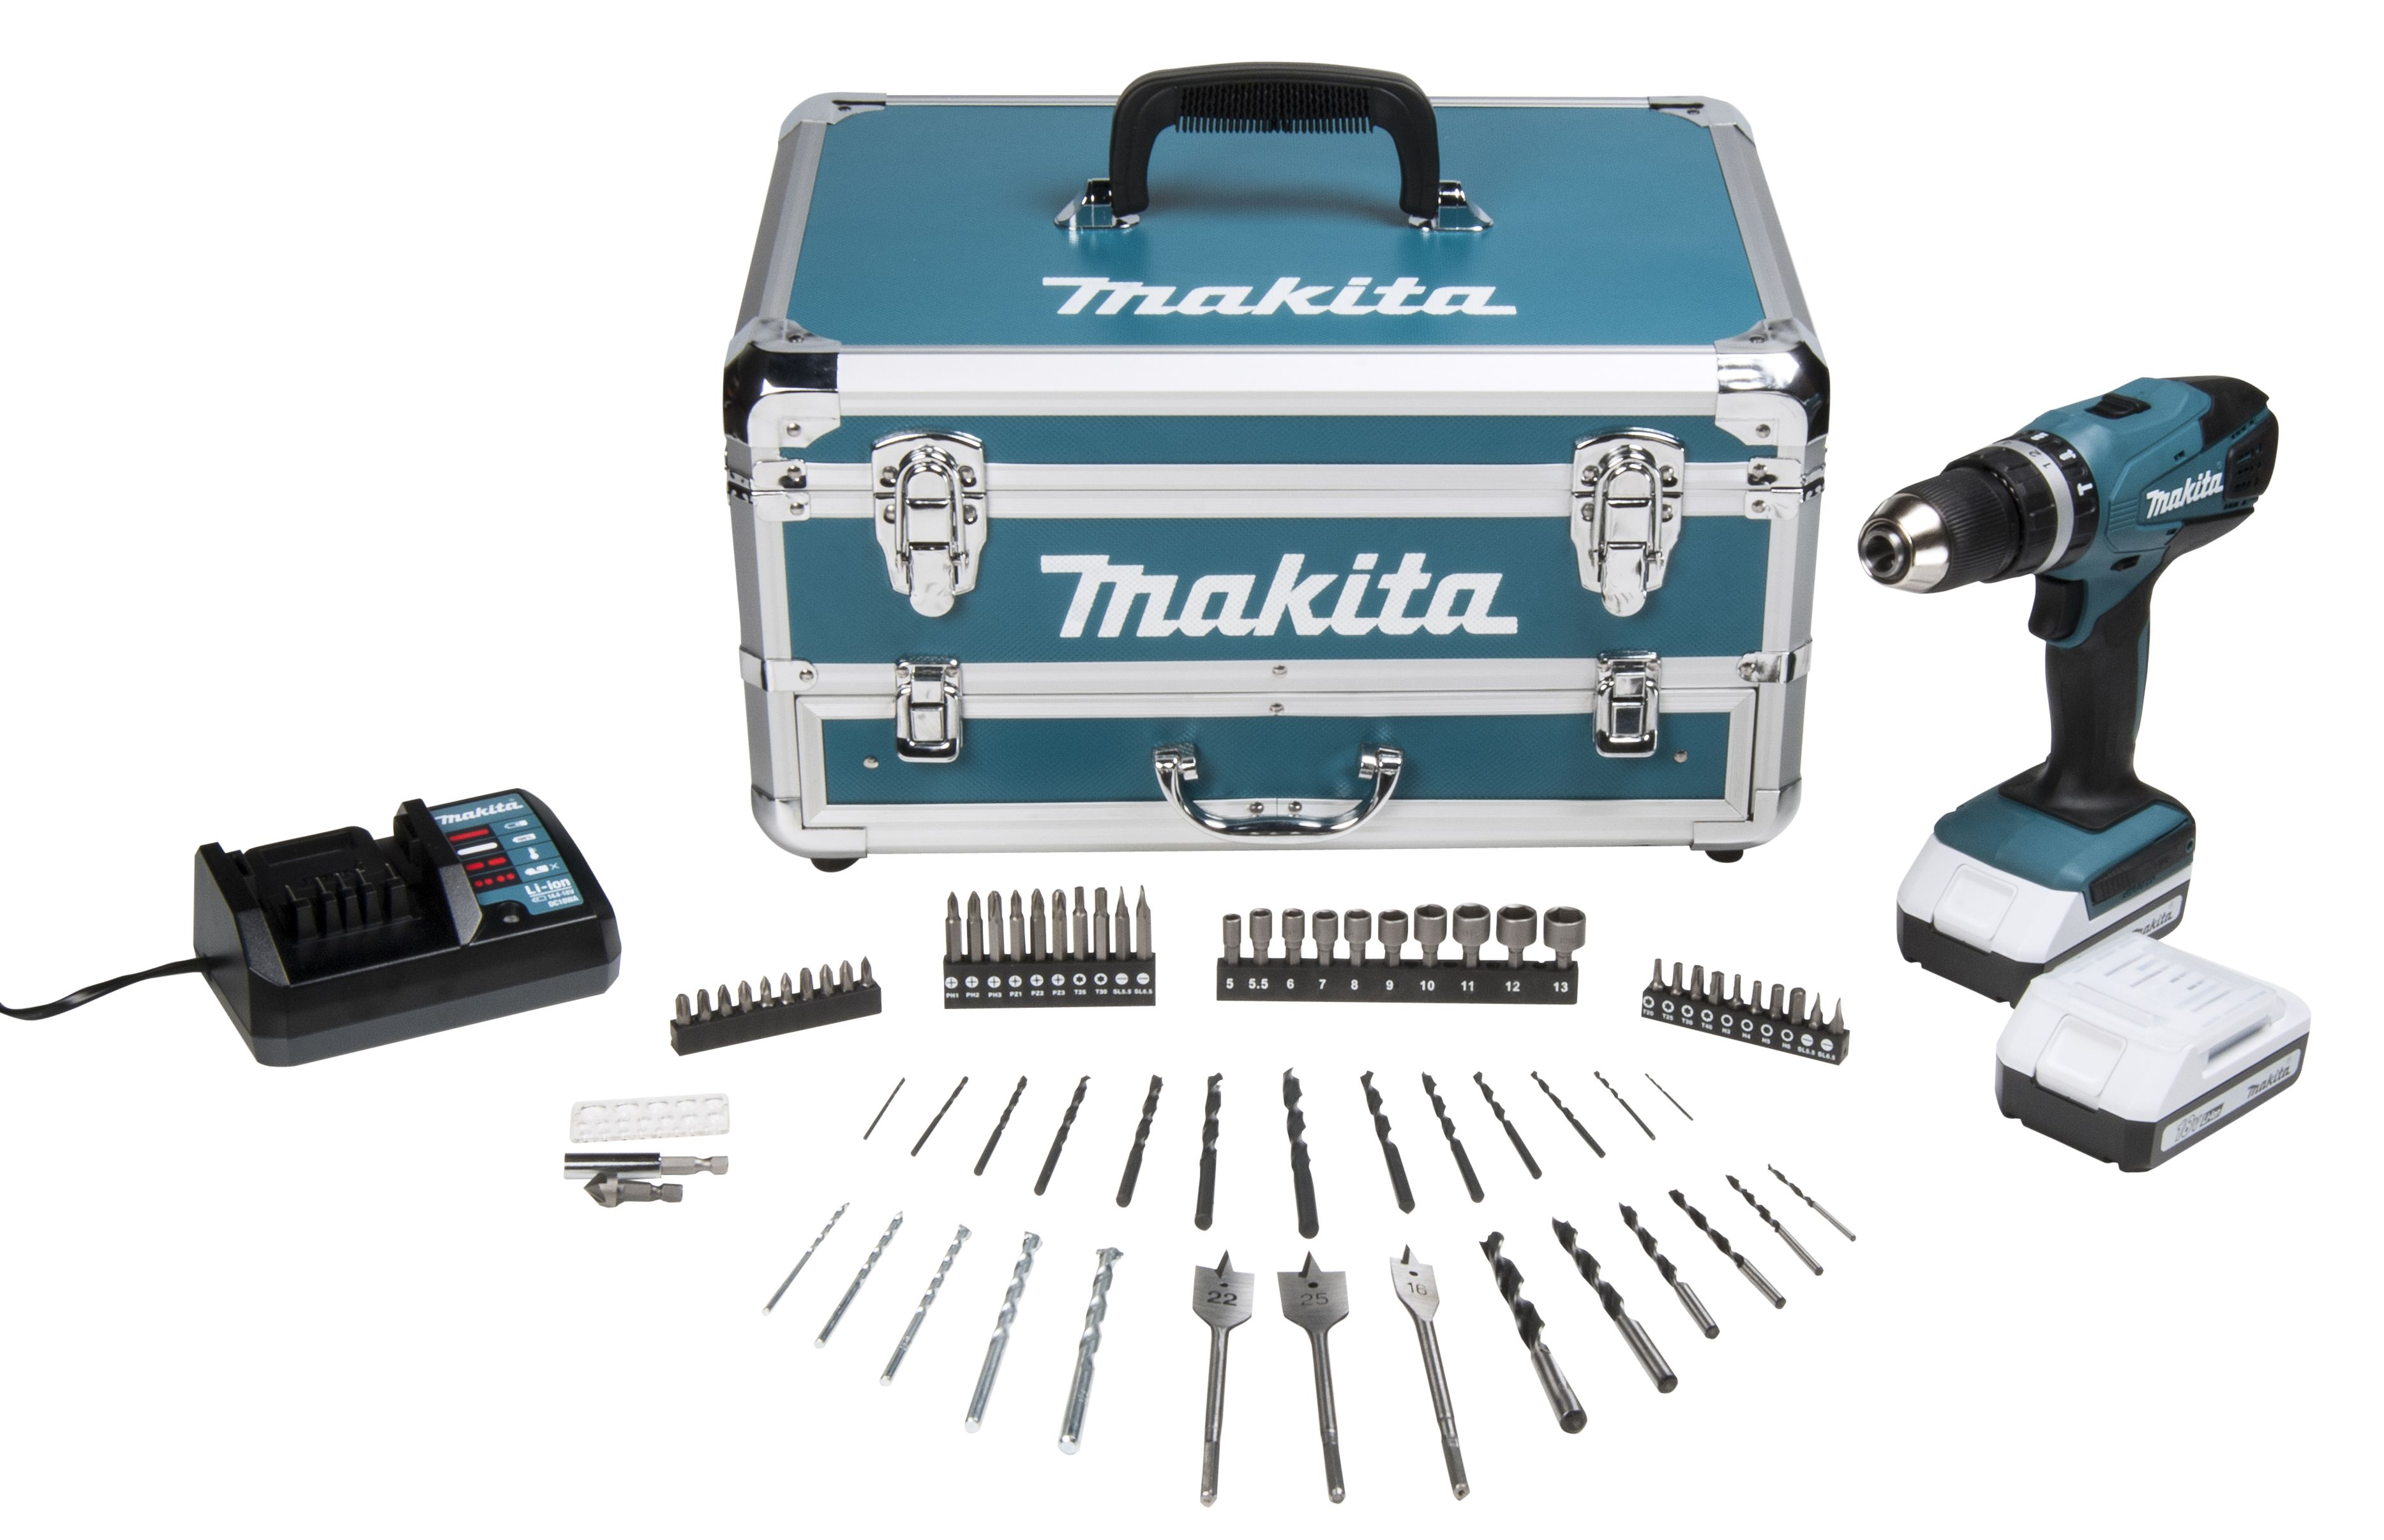 Makita Accuboor Set Makita G Series Cordless 18v 1 3ah Li Ion Combi Drill